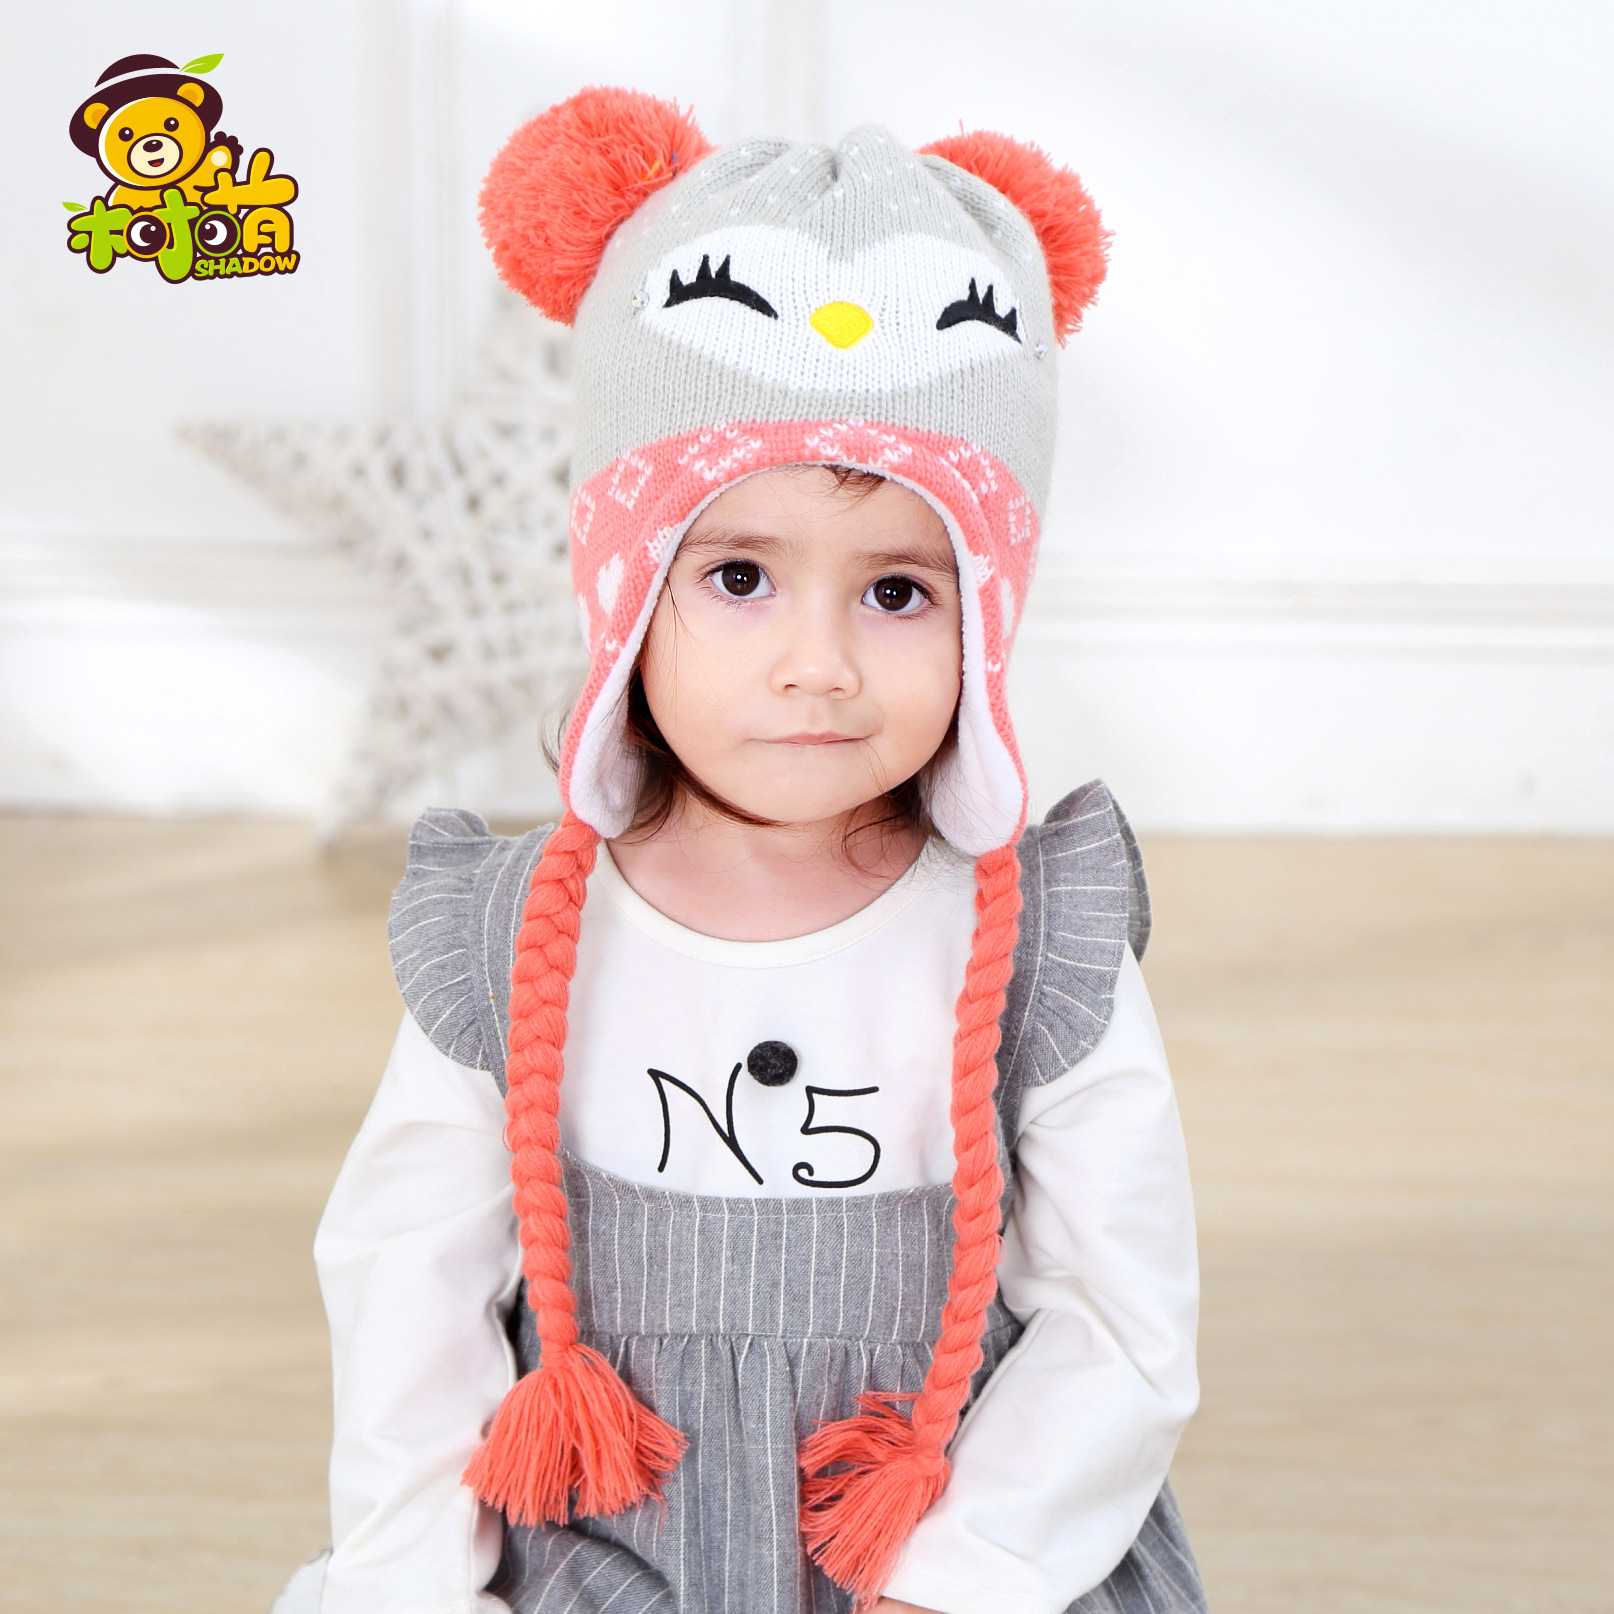 2017 New Children Knit Hat Winter Baby Girls Boys Beanie Hat Ear Flap Fleece  Lining Toddler Kids Warm Hat 728262bbb5e